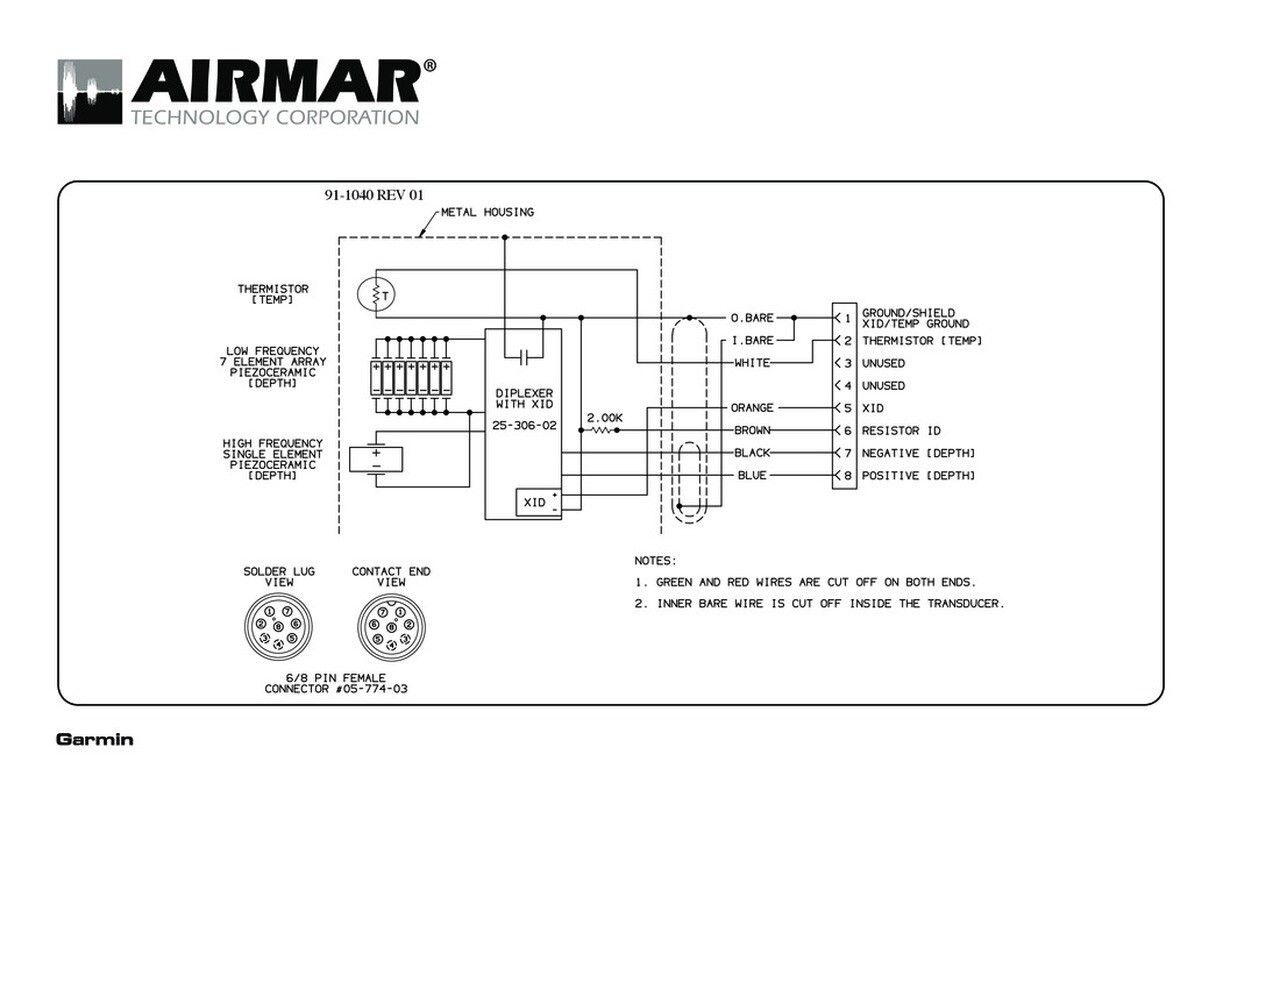 Gramin Wiring For Stricker 4 In 2020 Wire Cable Options Diagram